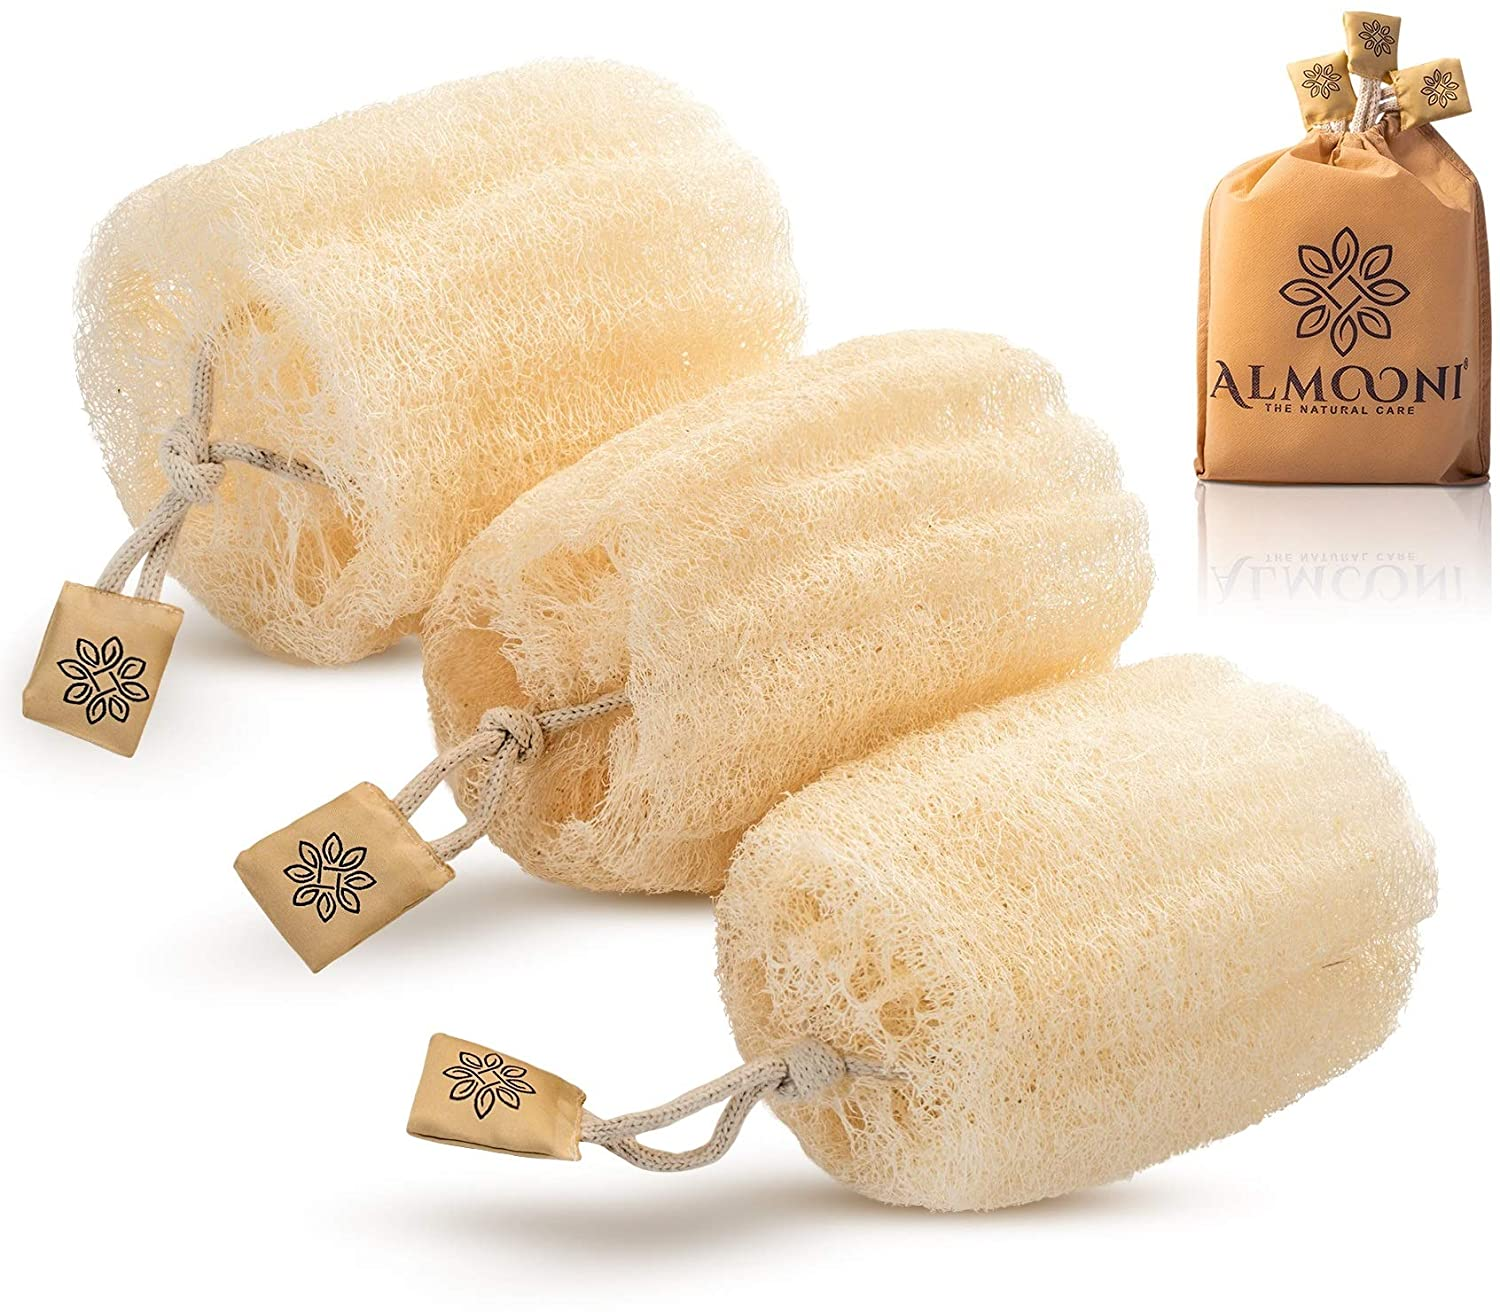 Premium Natural Eco-Friendly Egyptian Shower Loofah Sponge, Large Exfoliating Shower Loofa Body Scrubbers Buff Away Dead Skin for Smoother, More Radiant Appearance (3 lufa Pack): Beauty